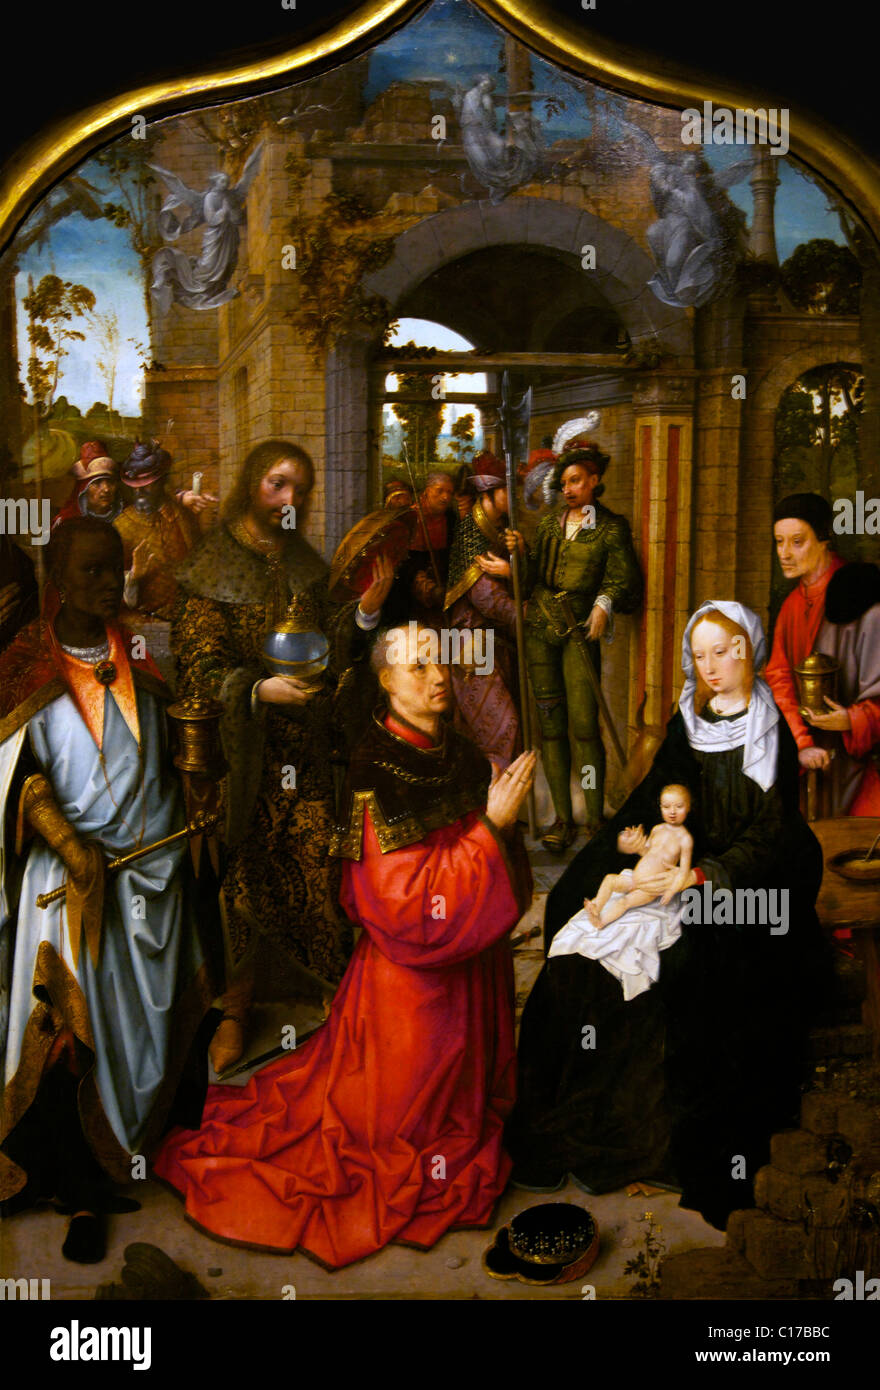 Detail of the Adoration of the Magi Triptych, by Adriaen Isenbrandt, circa 1510-1512, Birmingham Museum & Art - Stock Image